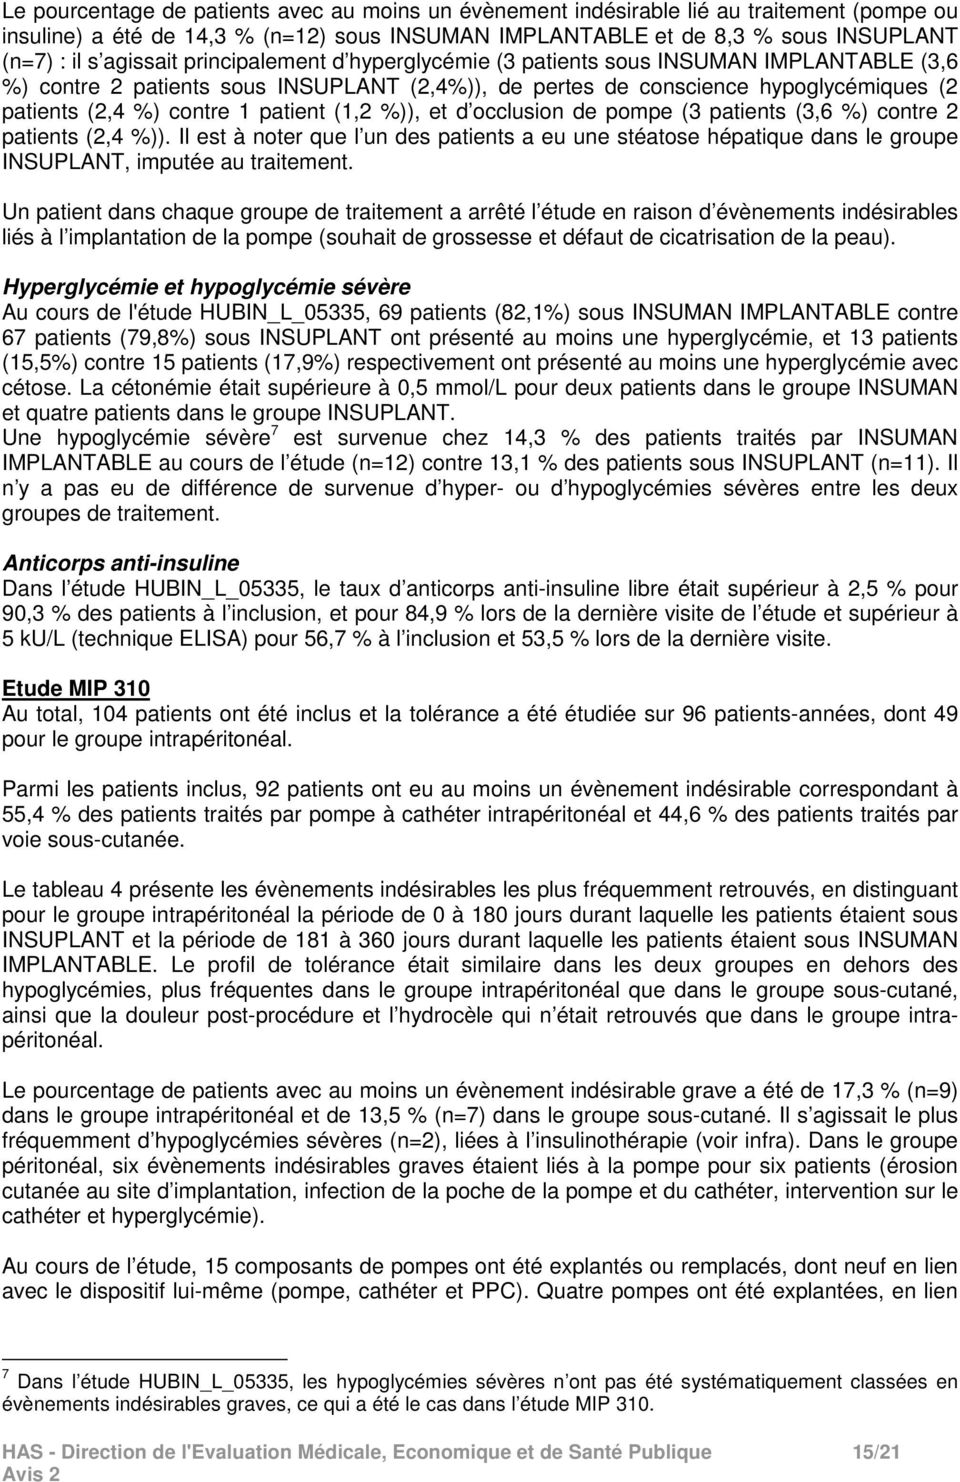 patient (1,2 %)), et d occlusion de pompe (3 patients (3,6 %) contre 2 patients (2,4 %)).